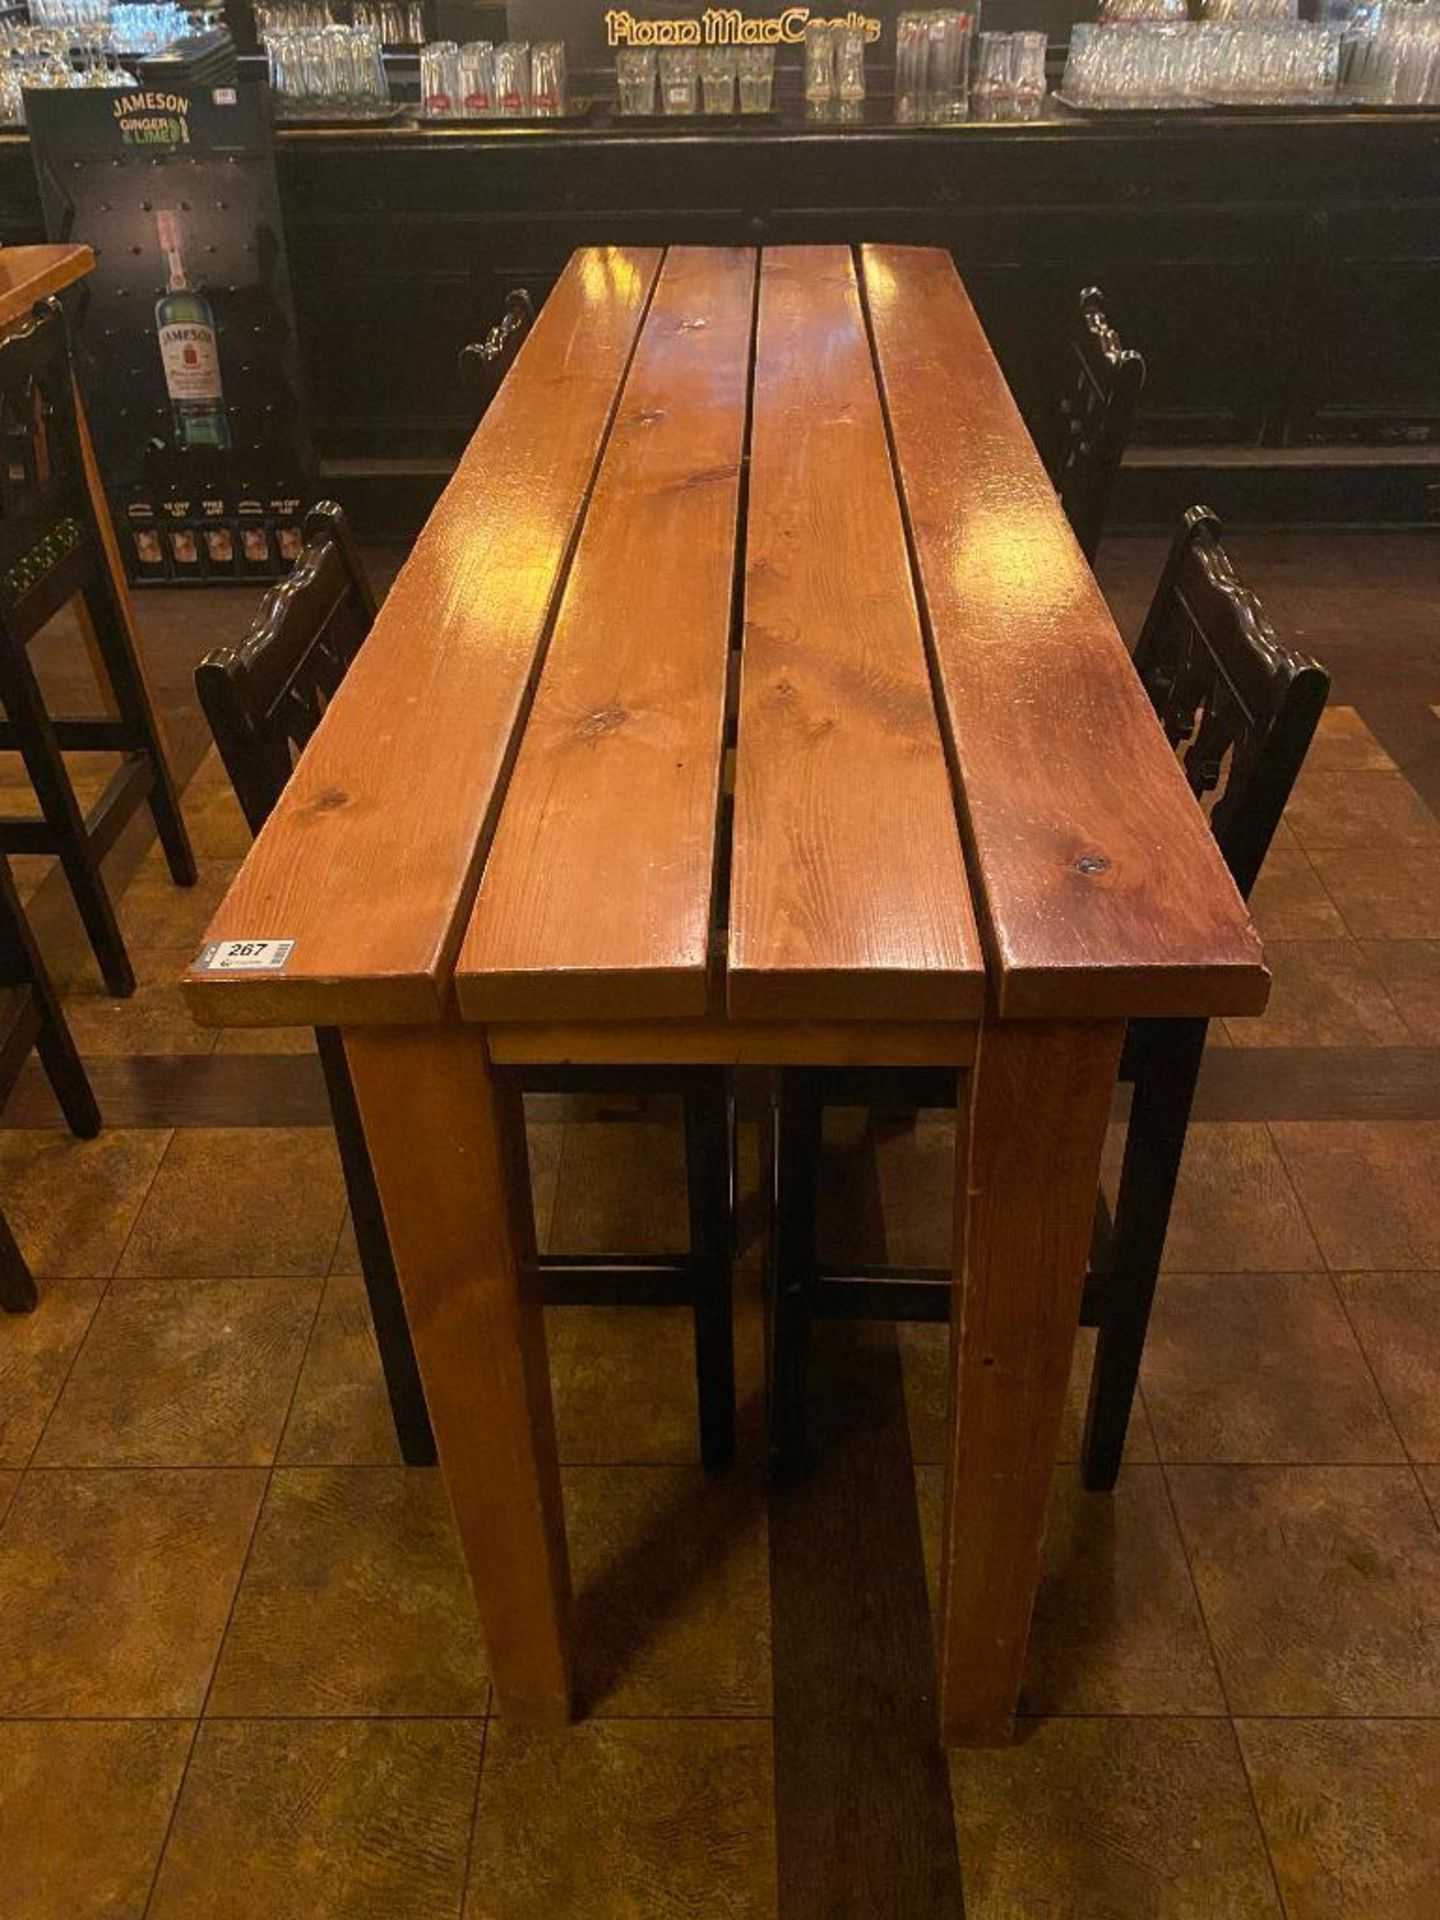 7' WOOD BAR HEIGHT TABLE WITH 4 BAR HEIGHT CHAIRS - Image 3 of 3